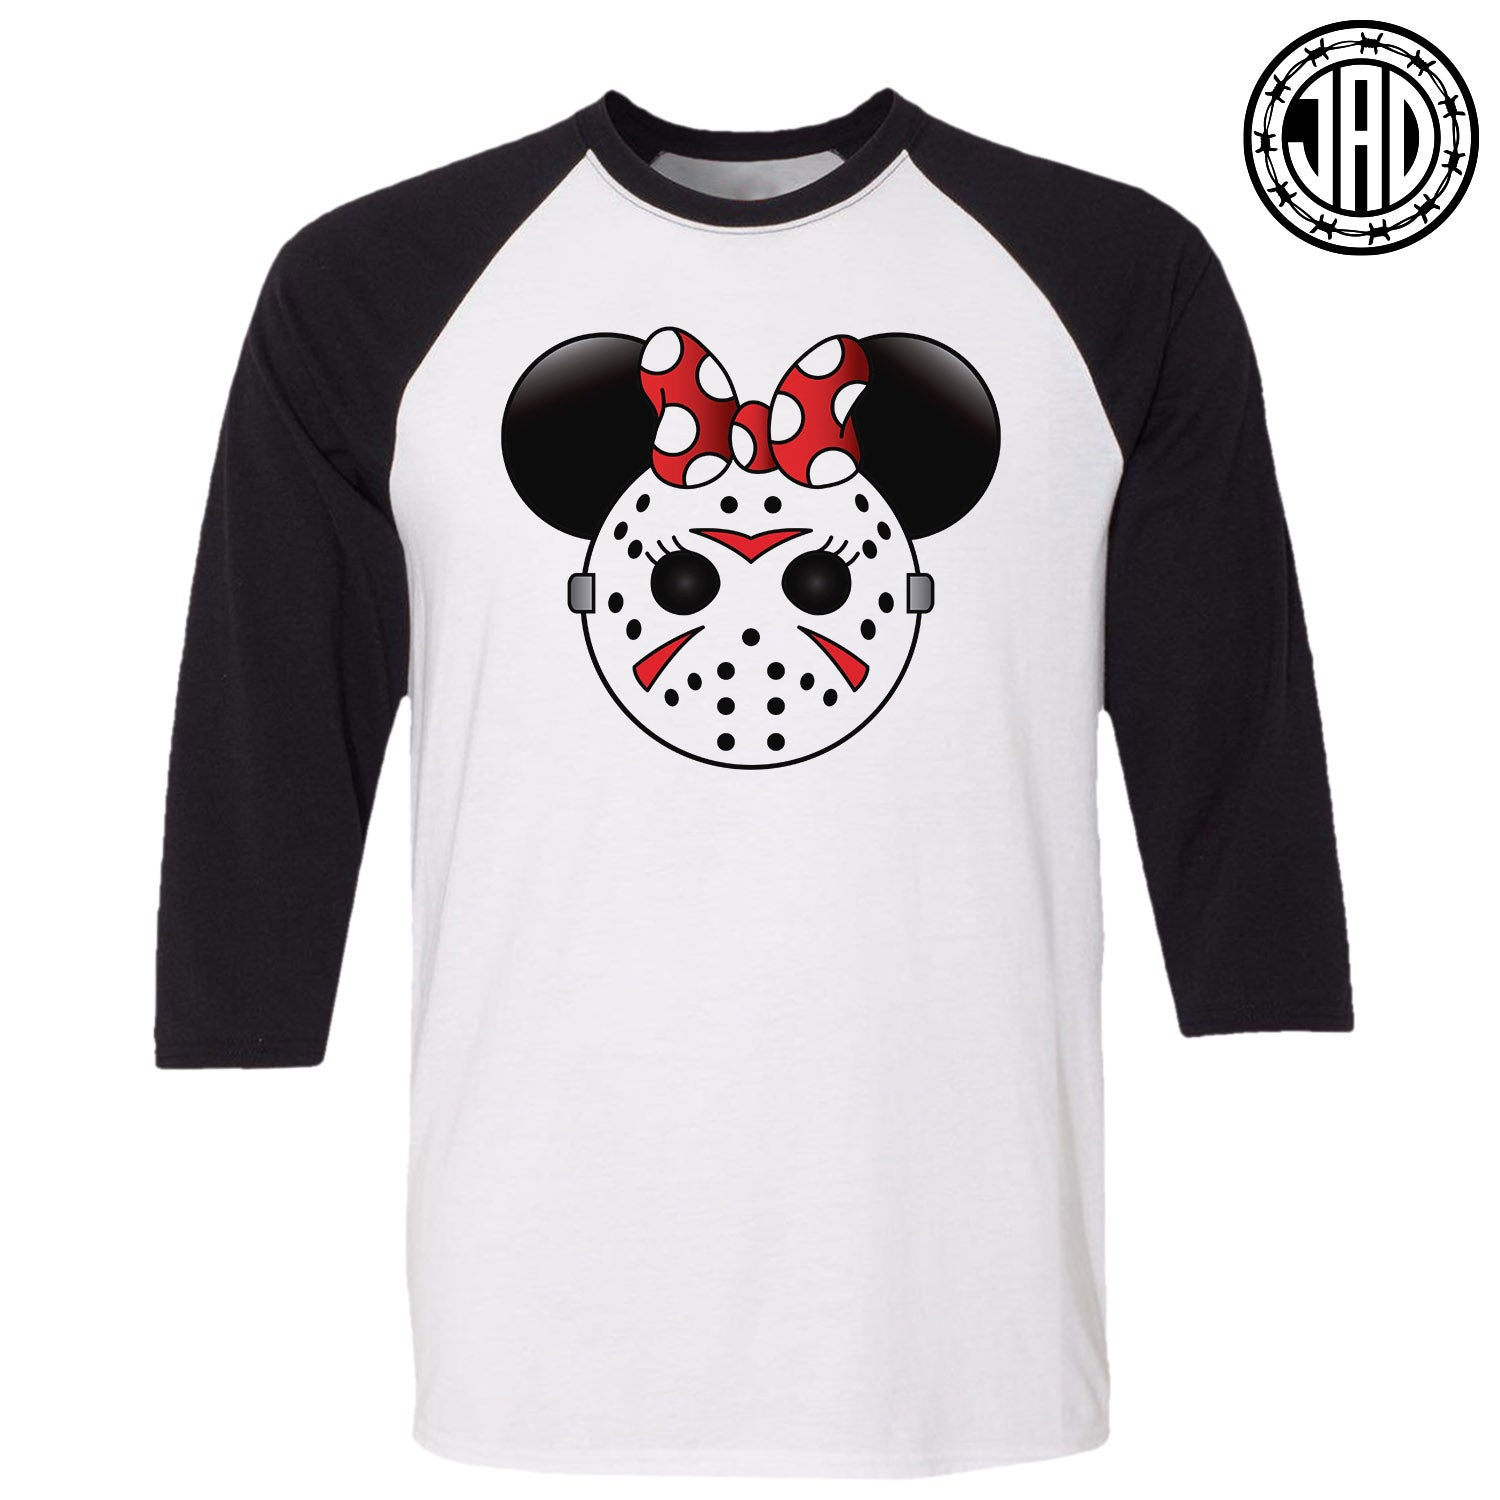 Mrs. Murder Mouse - Men's (Unisex) Baseball Tee